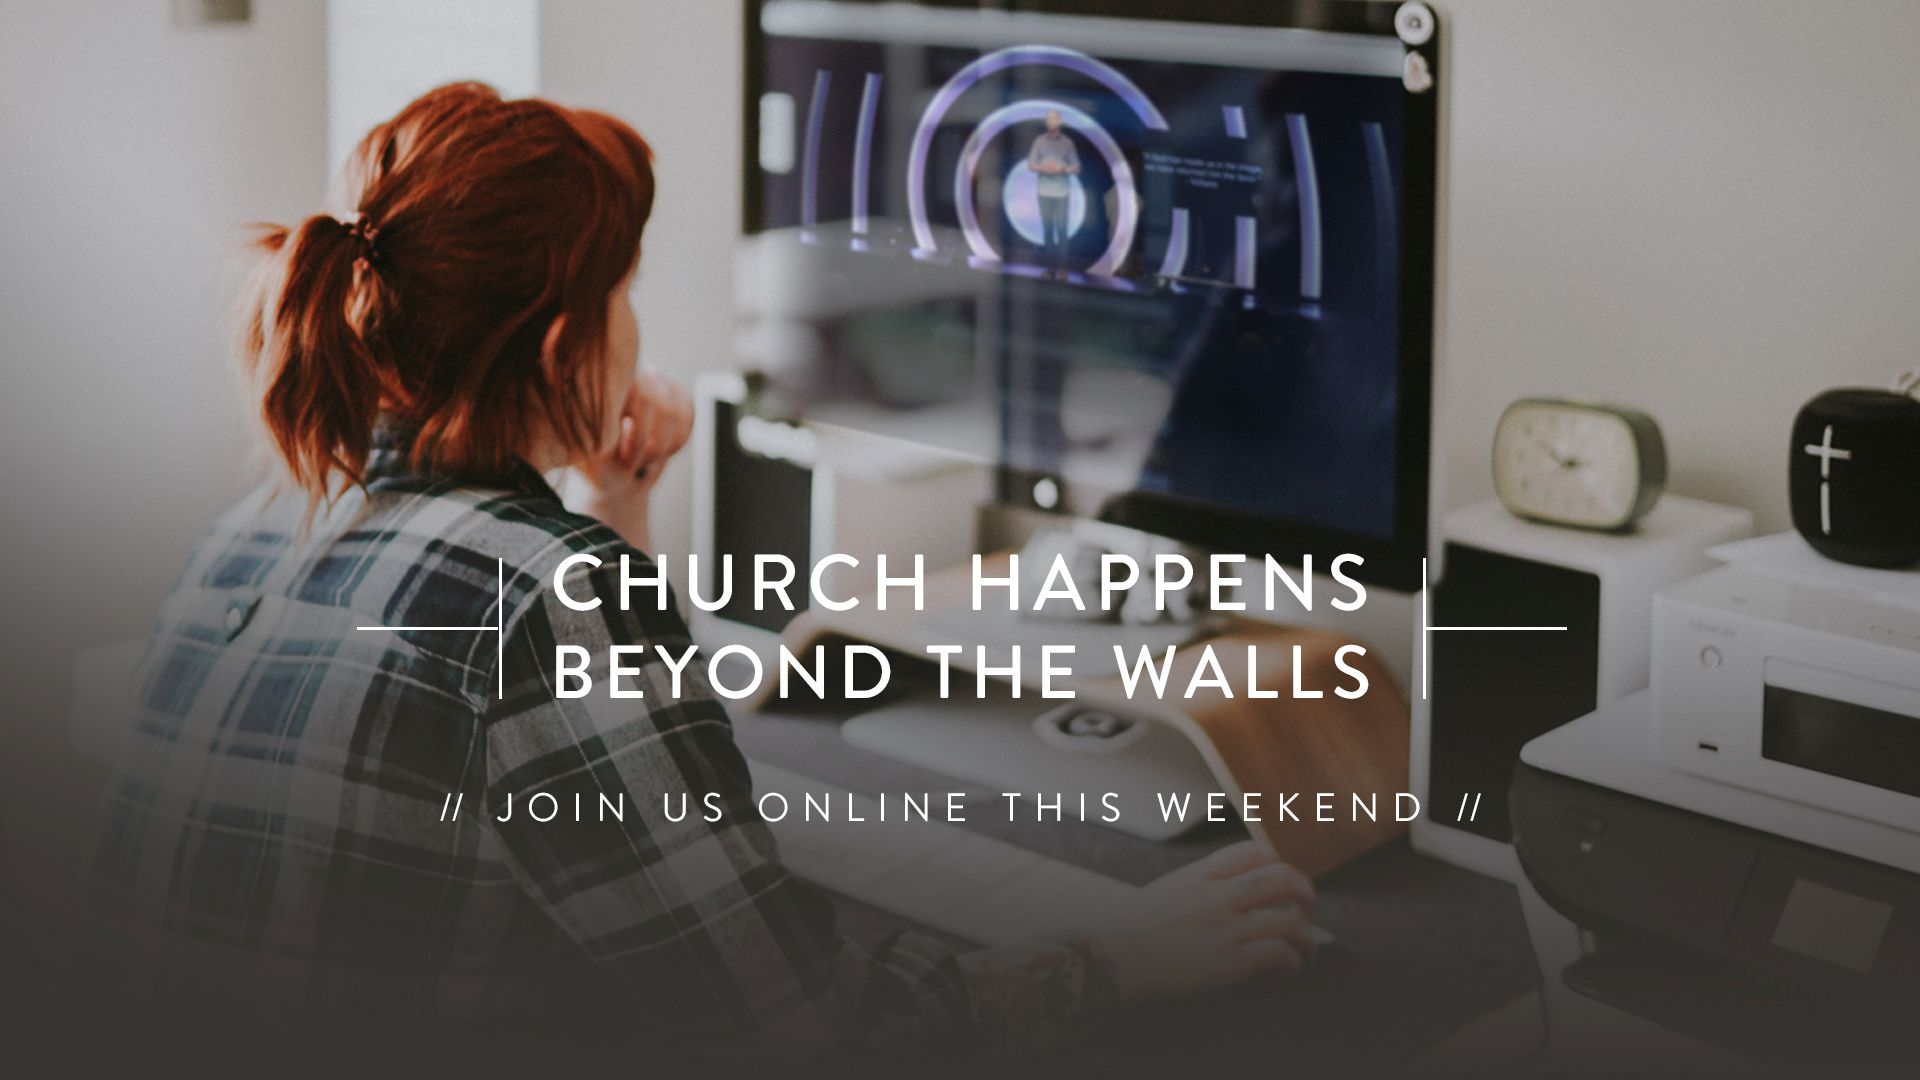 Beyond church walls